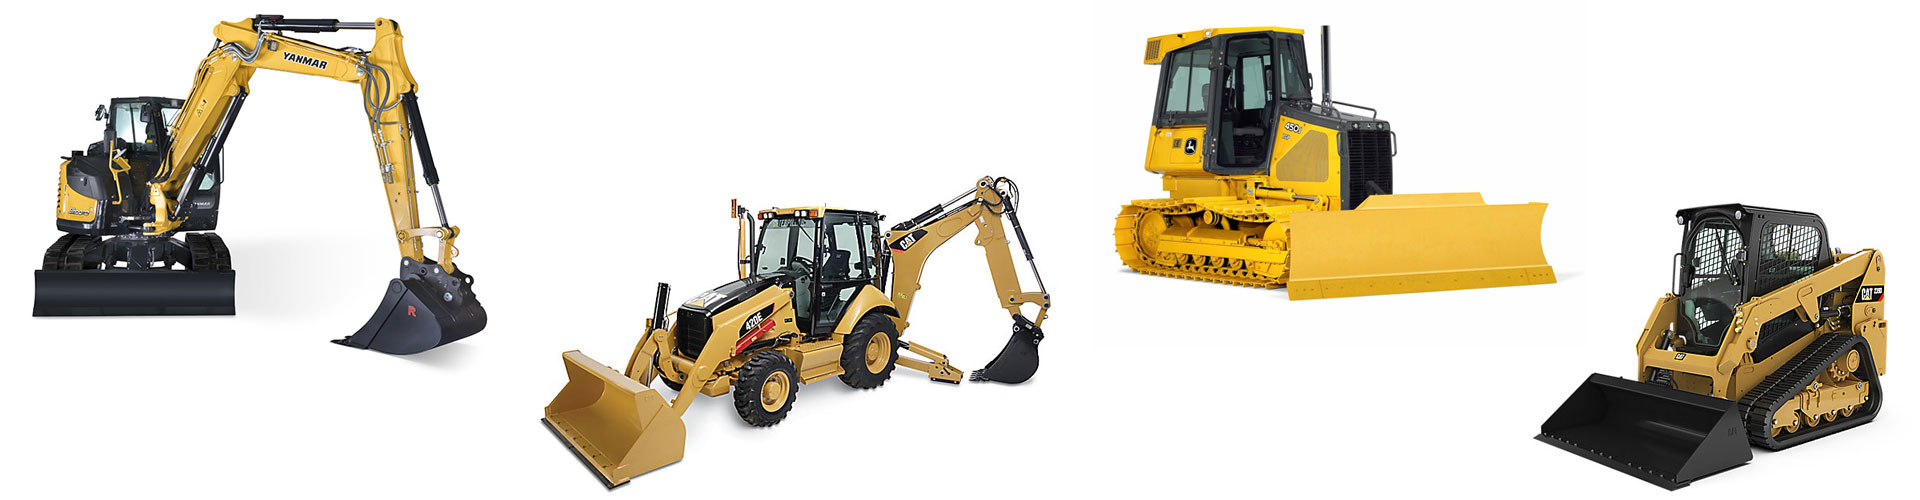 Heavy Equipment Rentals in Mendocino County